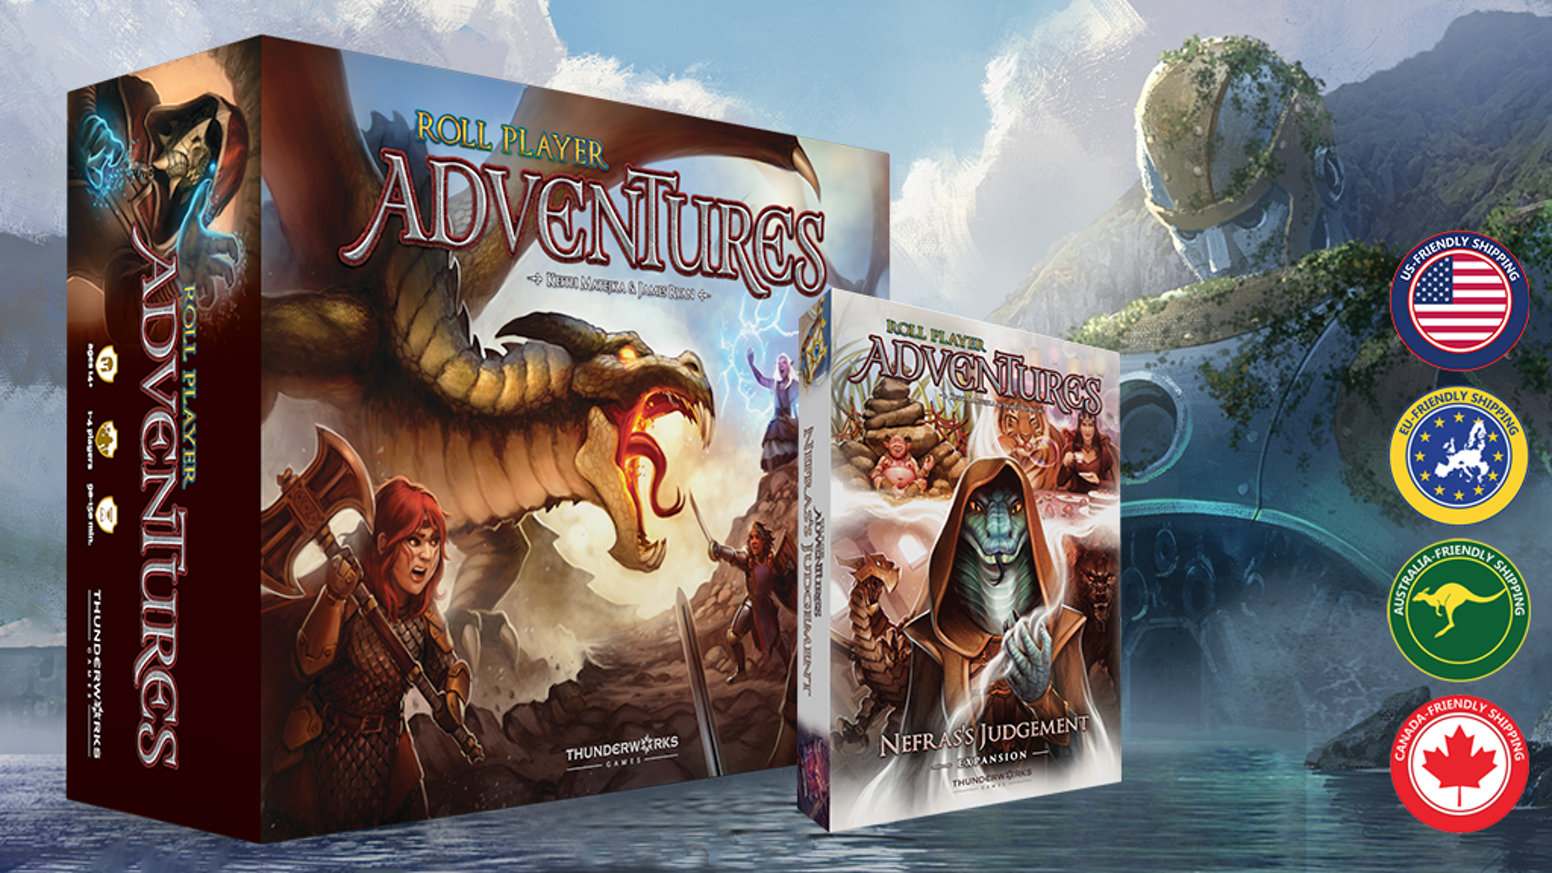 A stand-alone, co-op, narrative board game for 1-4 players. Import your Roll Player character and go on an adventure!